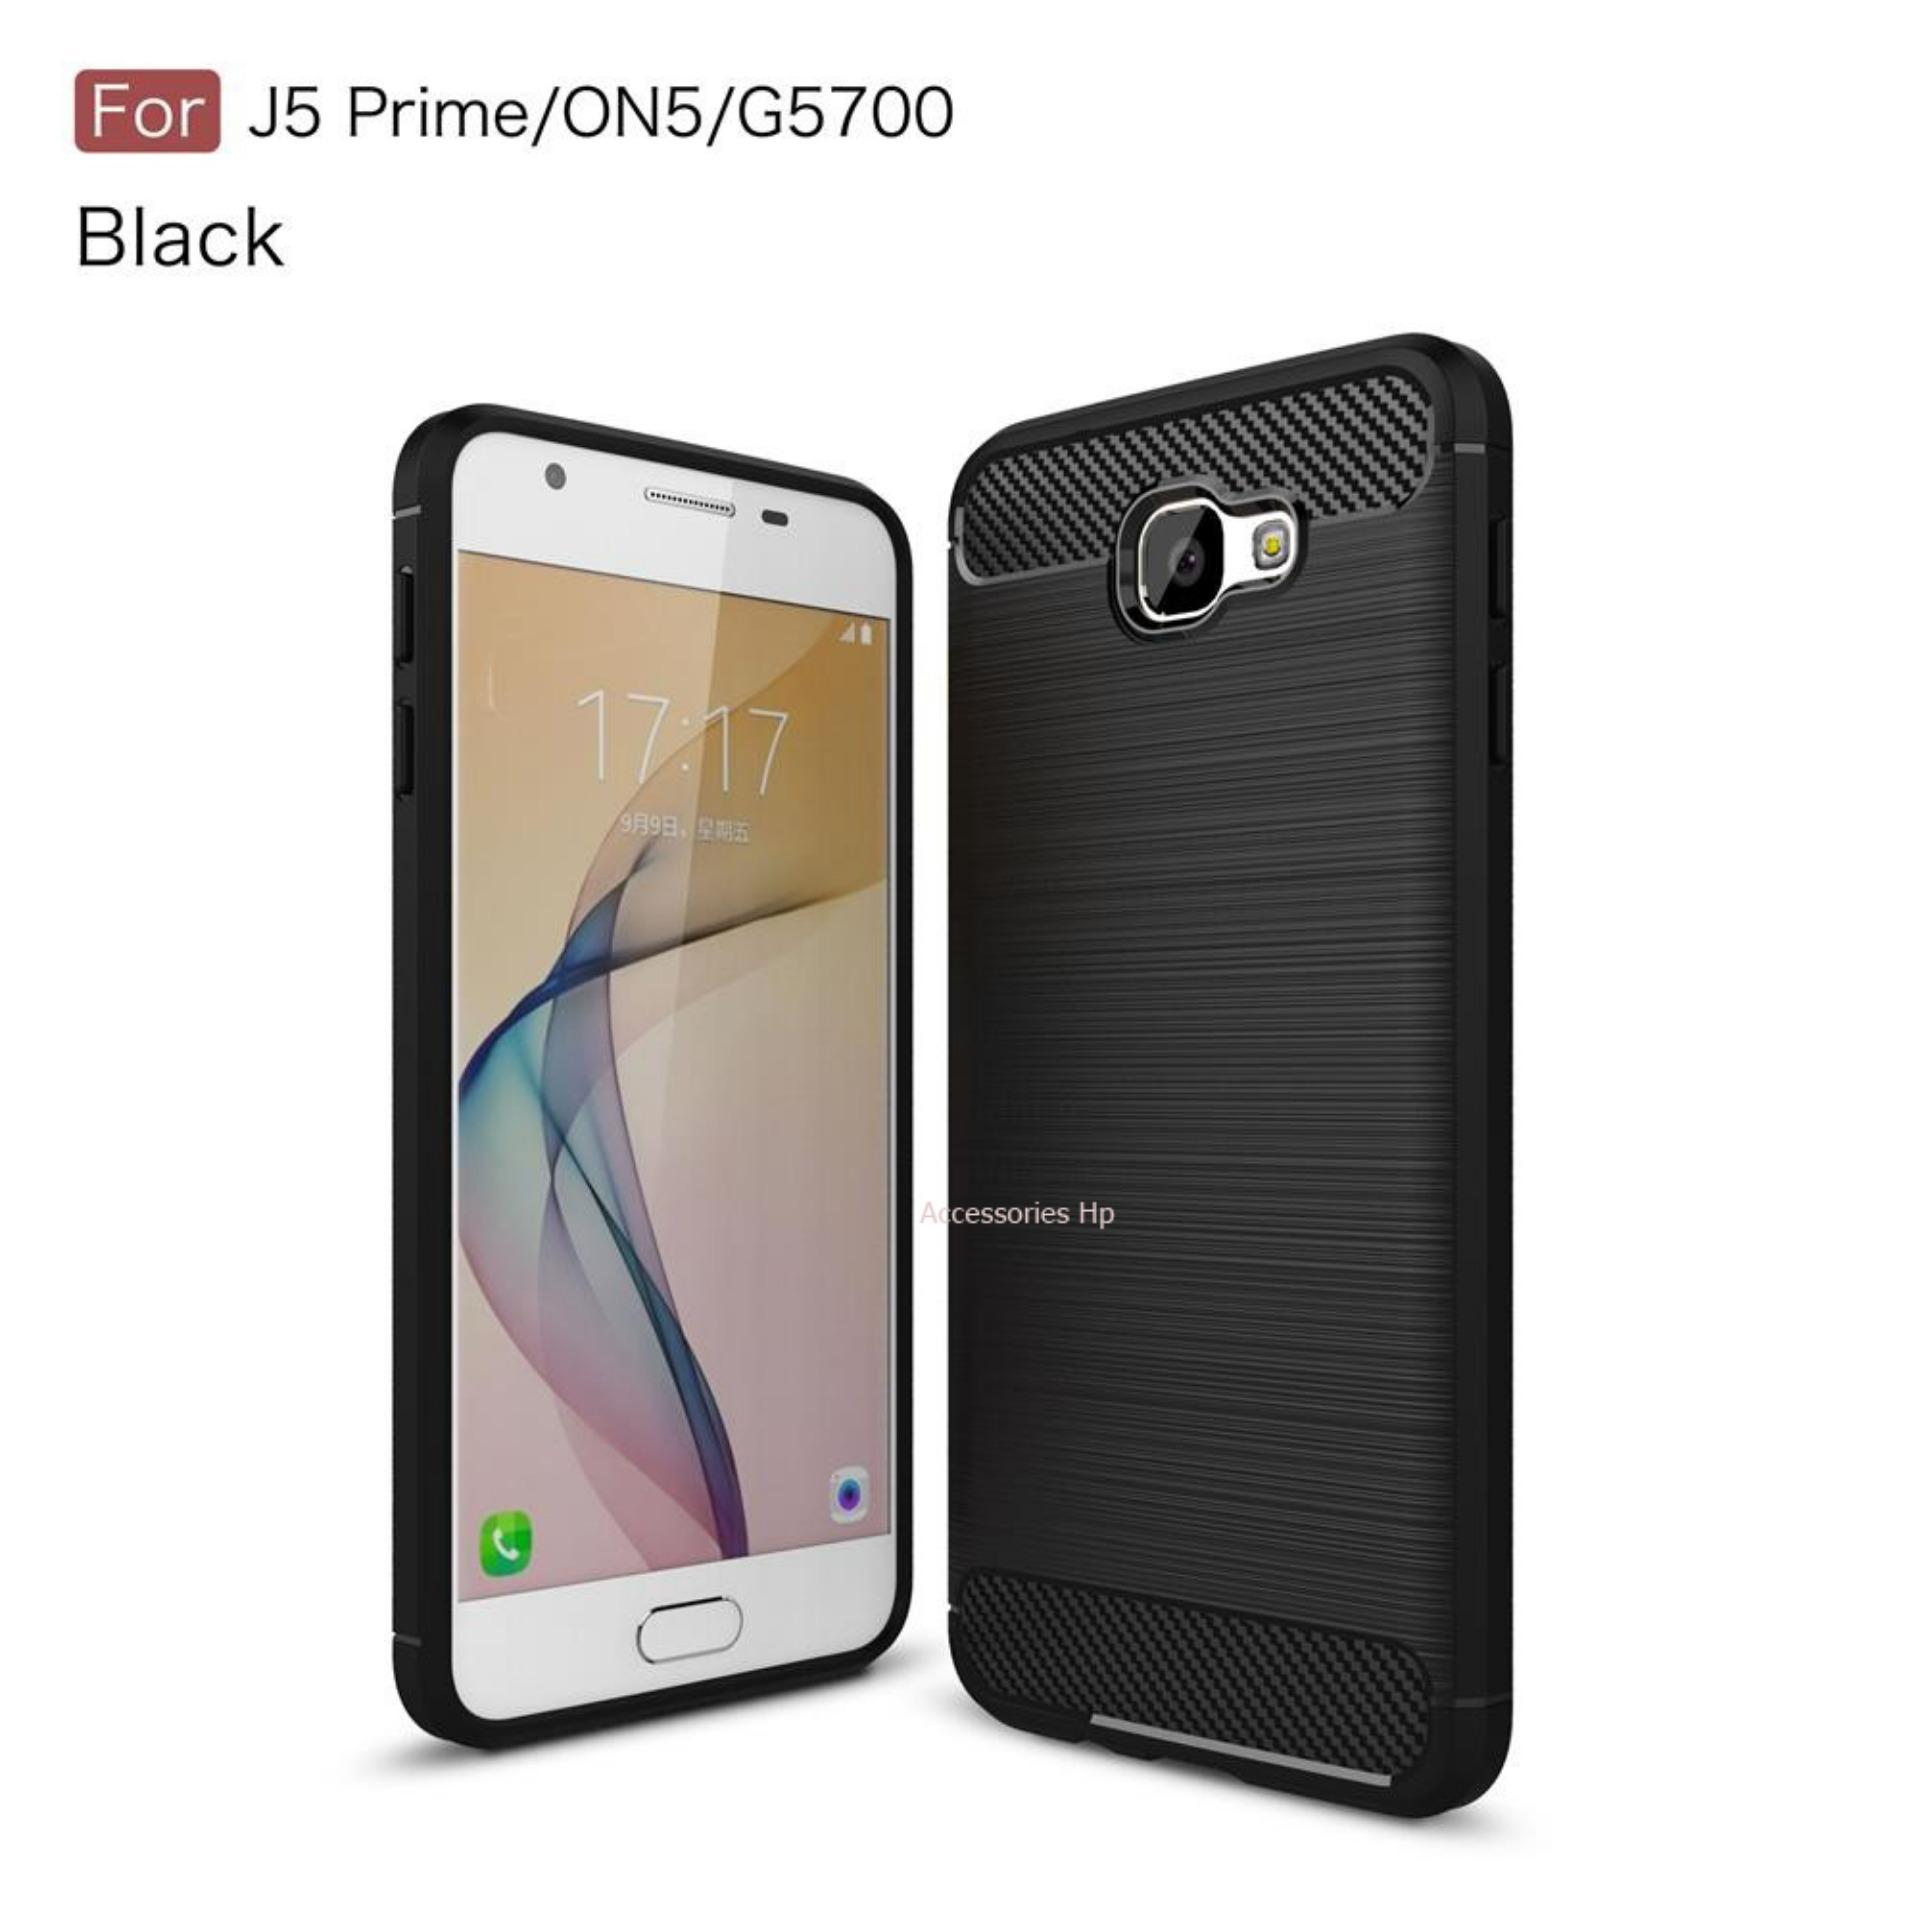 Accessories HP Premium Quality Carbon Shockproof Hybrid Case for Samsung Galaxy J5 Prime - Black